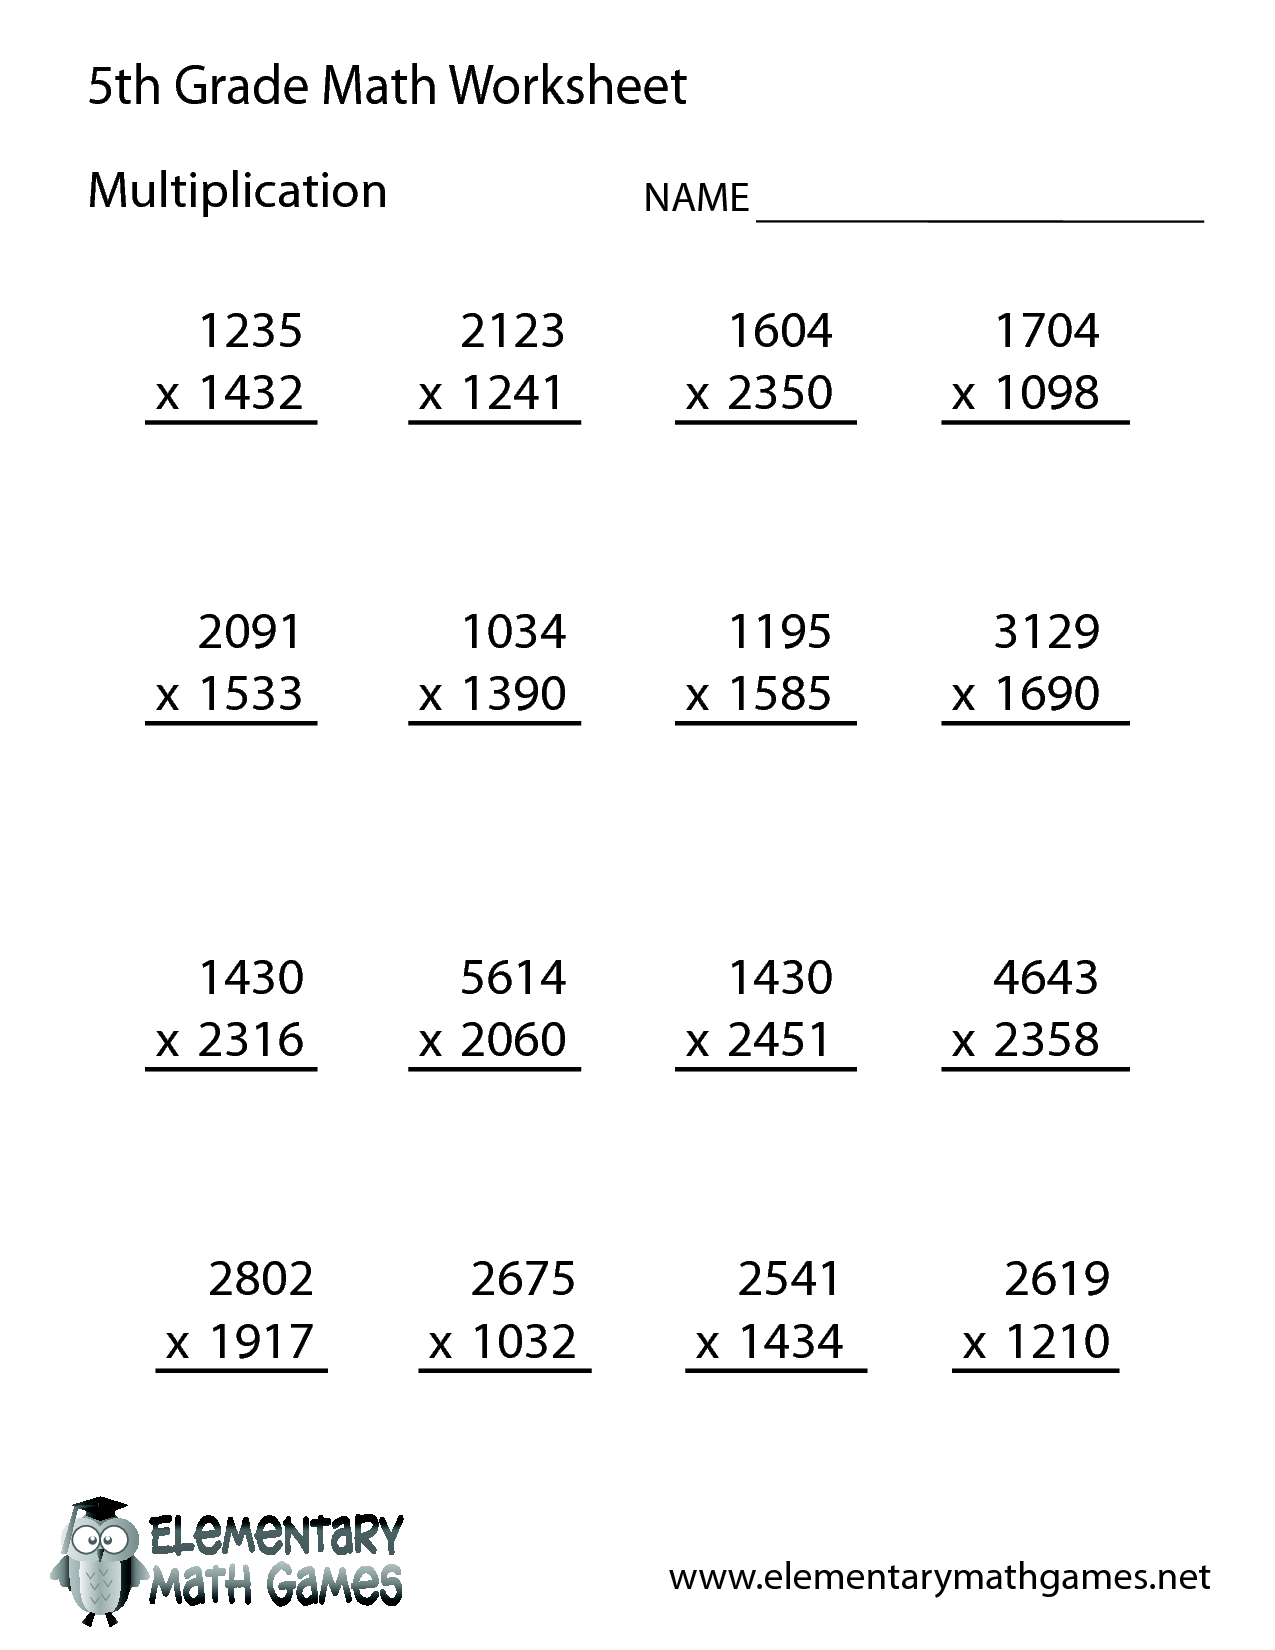 Uncategorized Fifth Grade Math Worksheets free math worksheets for 5th grade worksheet worksheet